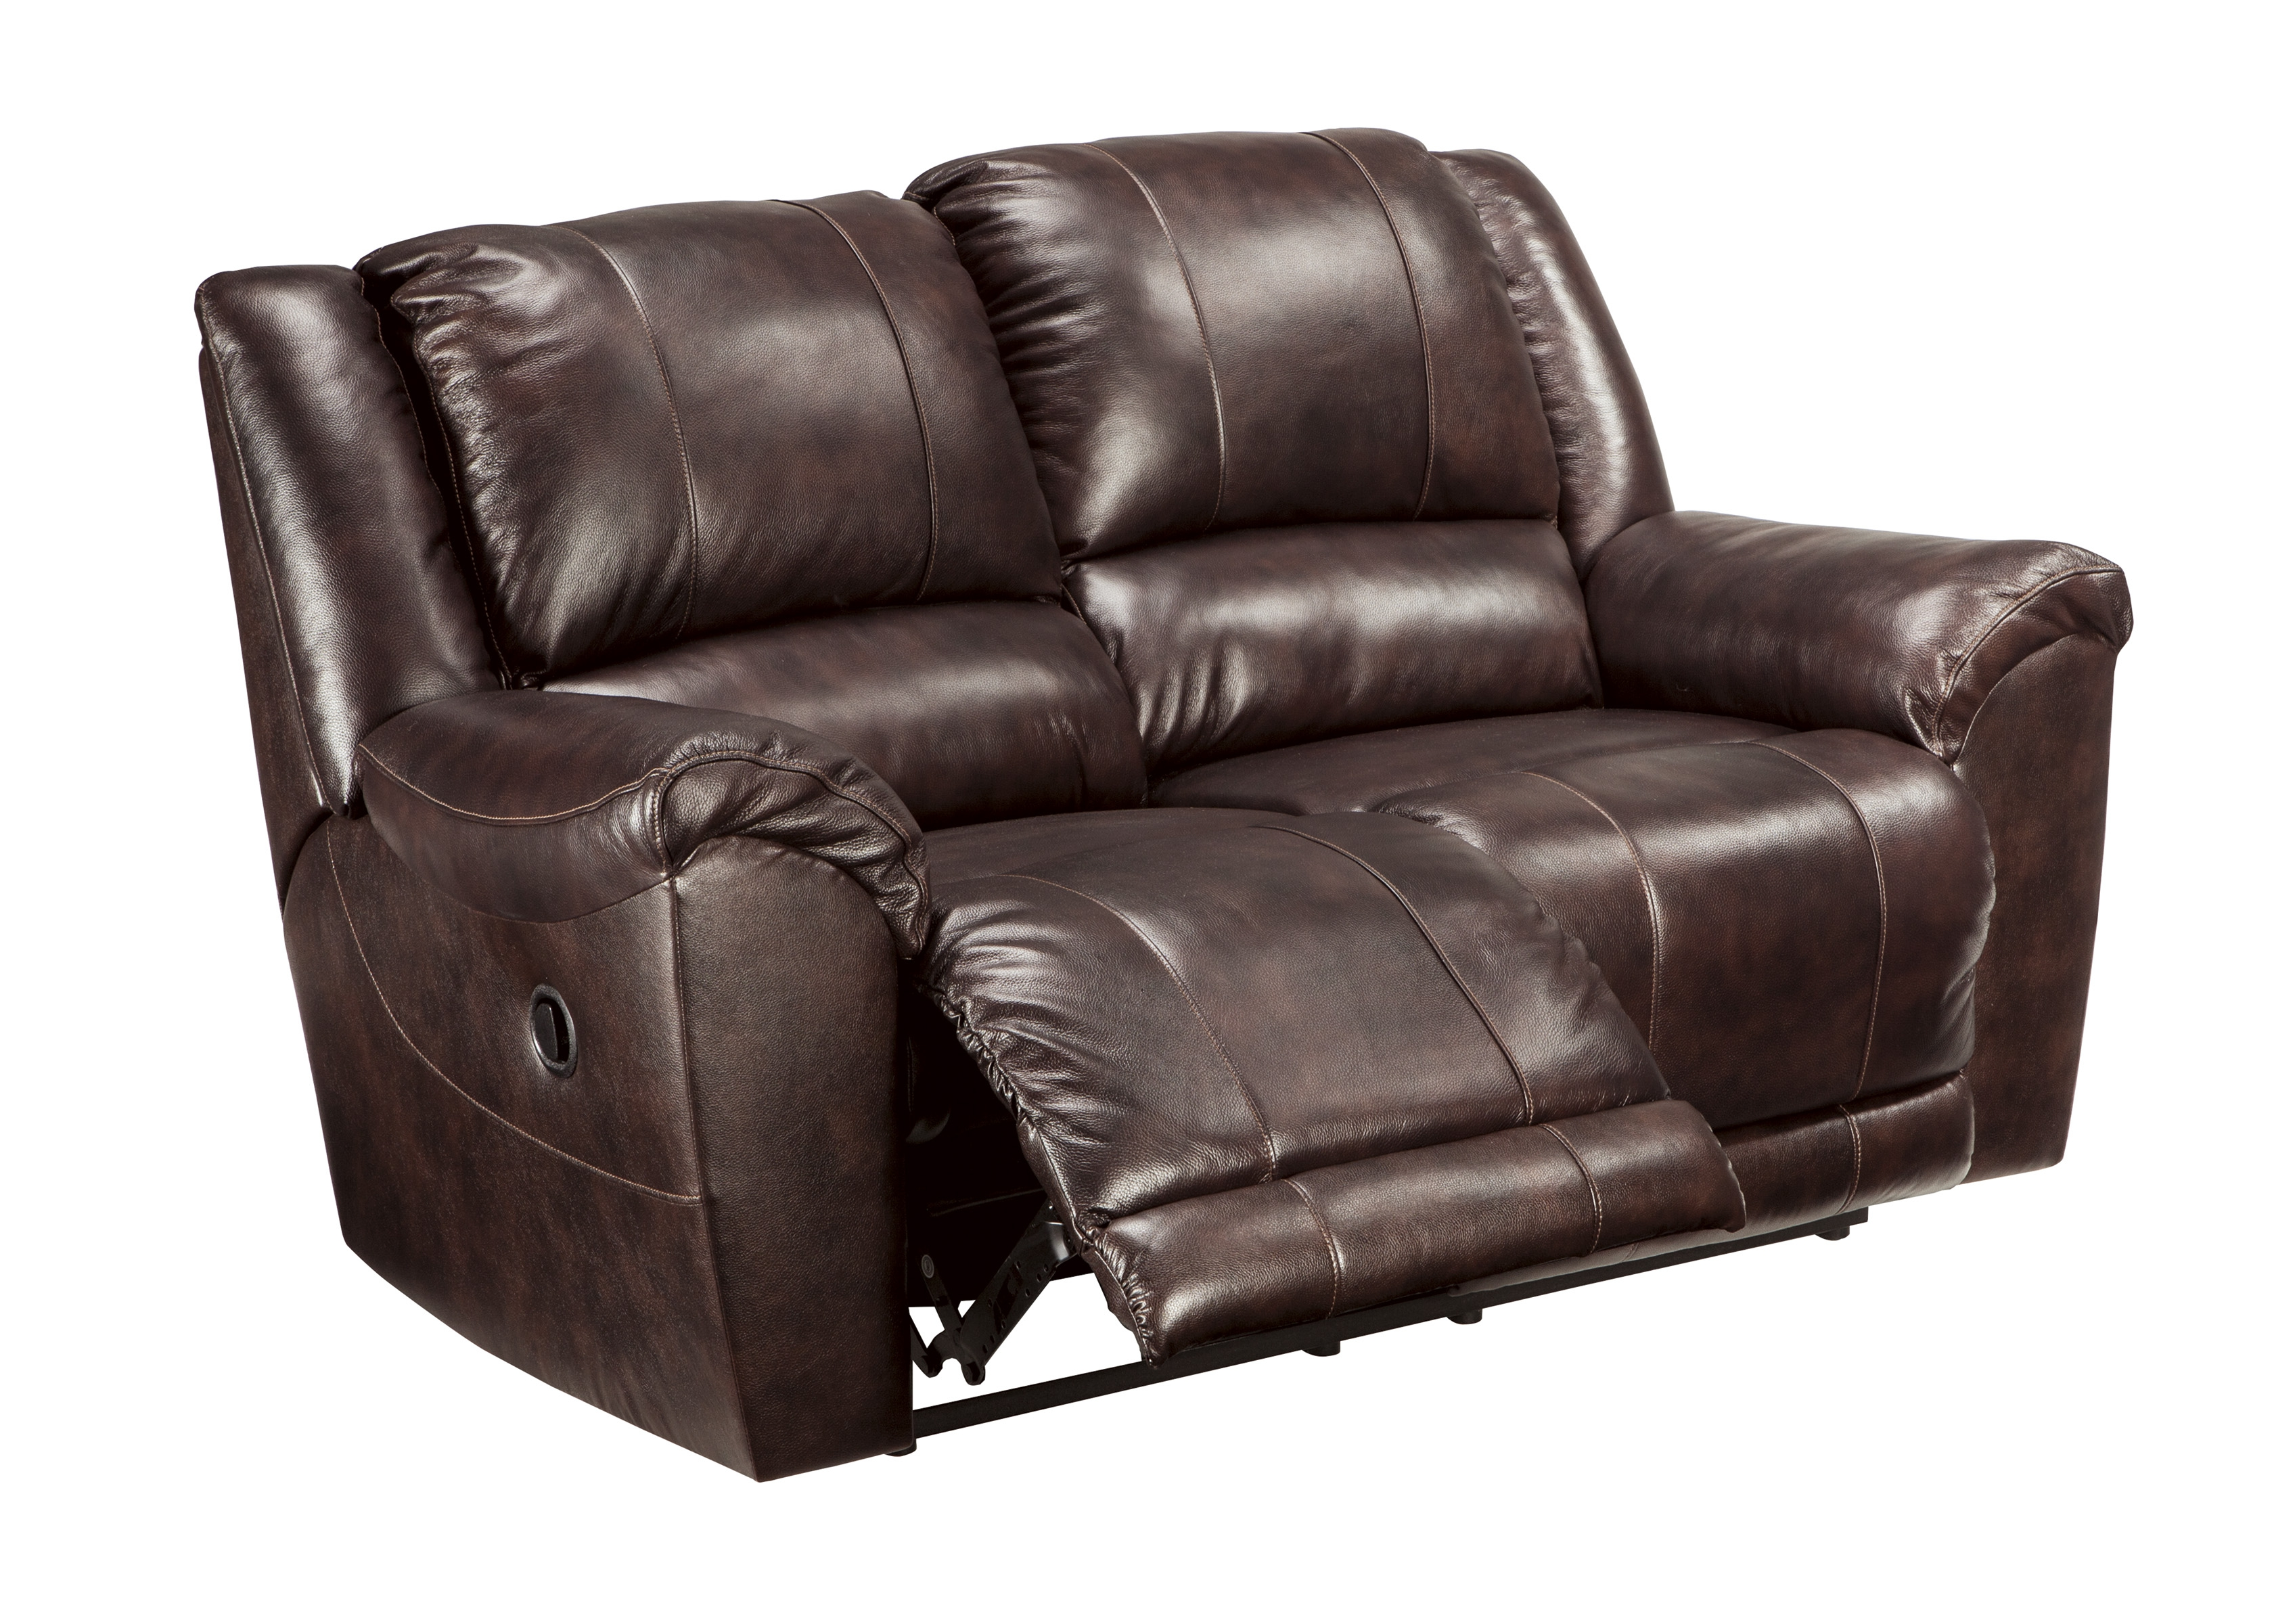 Yancy Contemporary Walnut Grain Leather Vinyl Reclining Loveseat The Classy Home